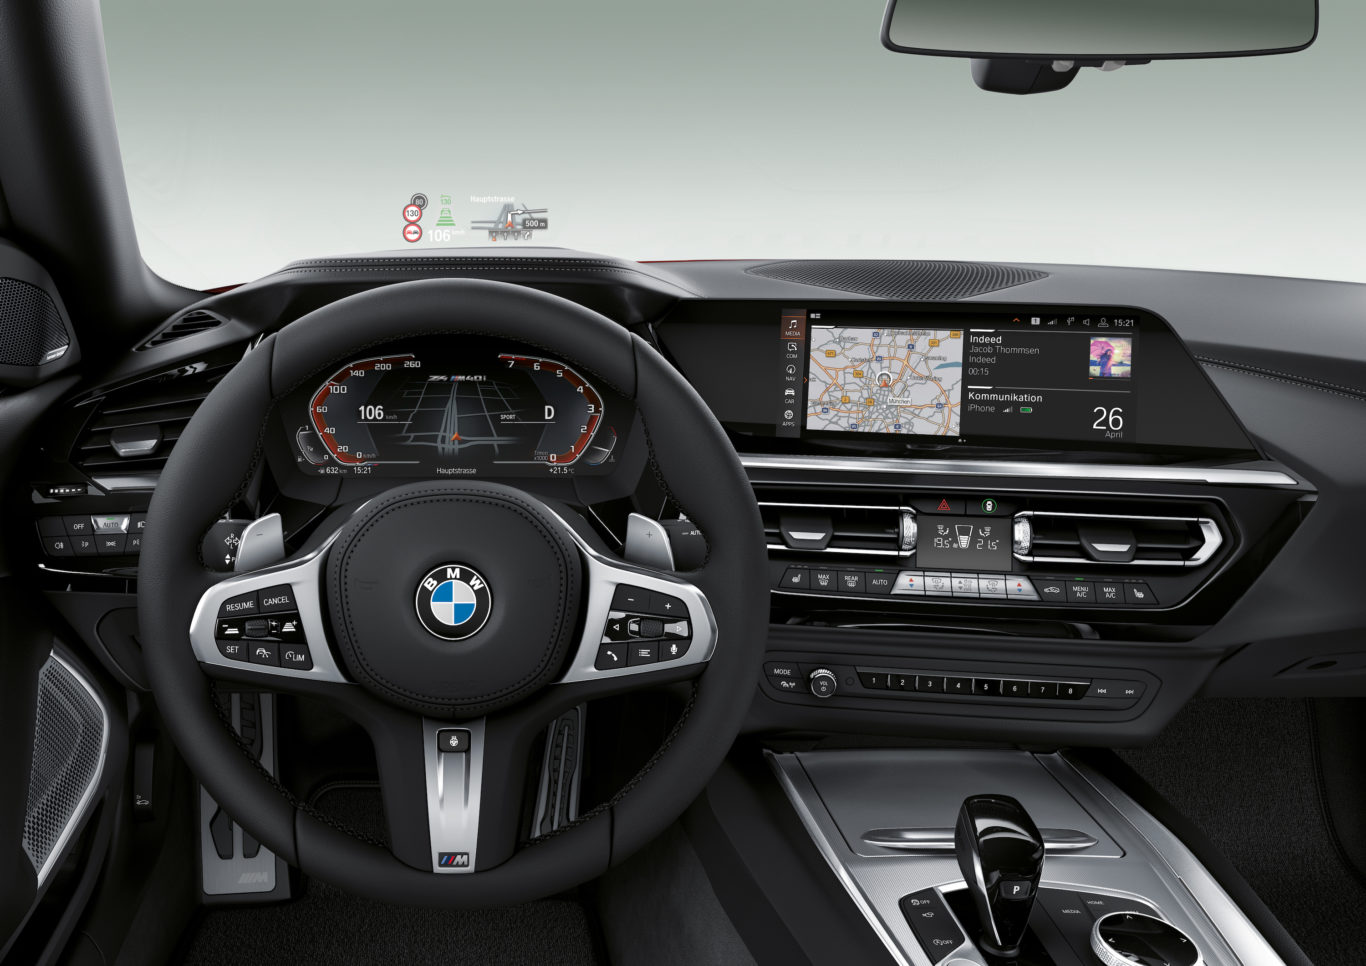 New Bmw Z4 Roadster Revealed At Pebble Beach Shropshire Star